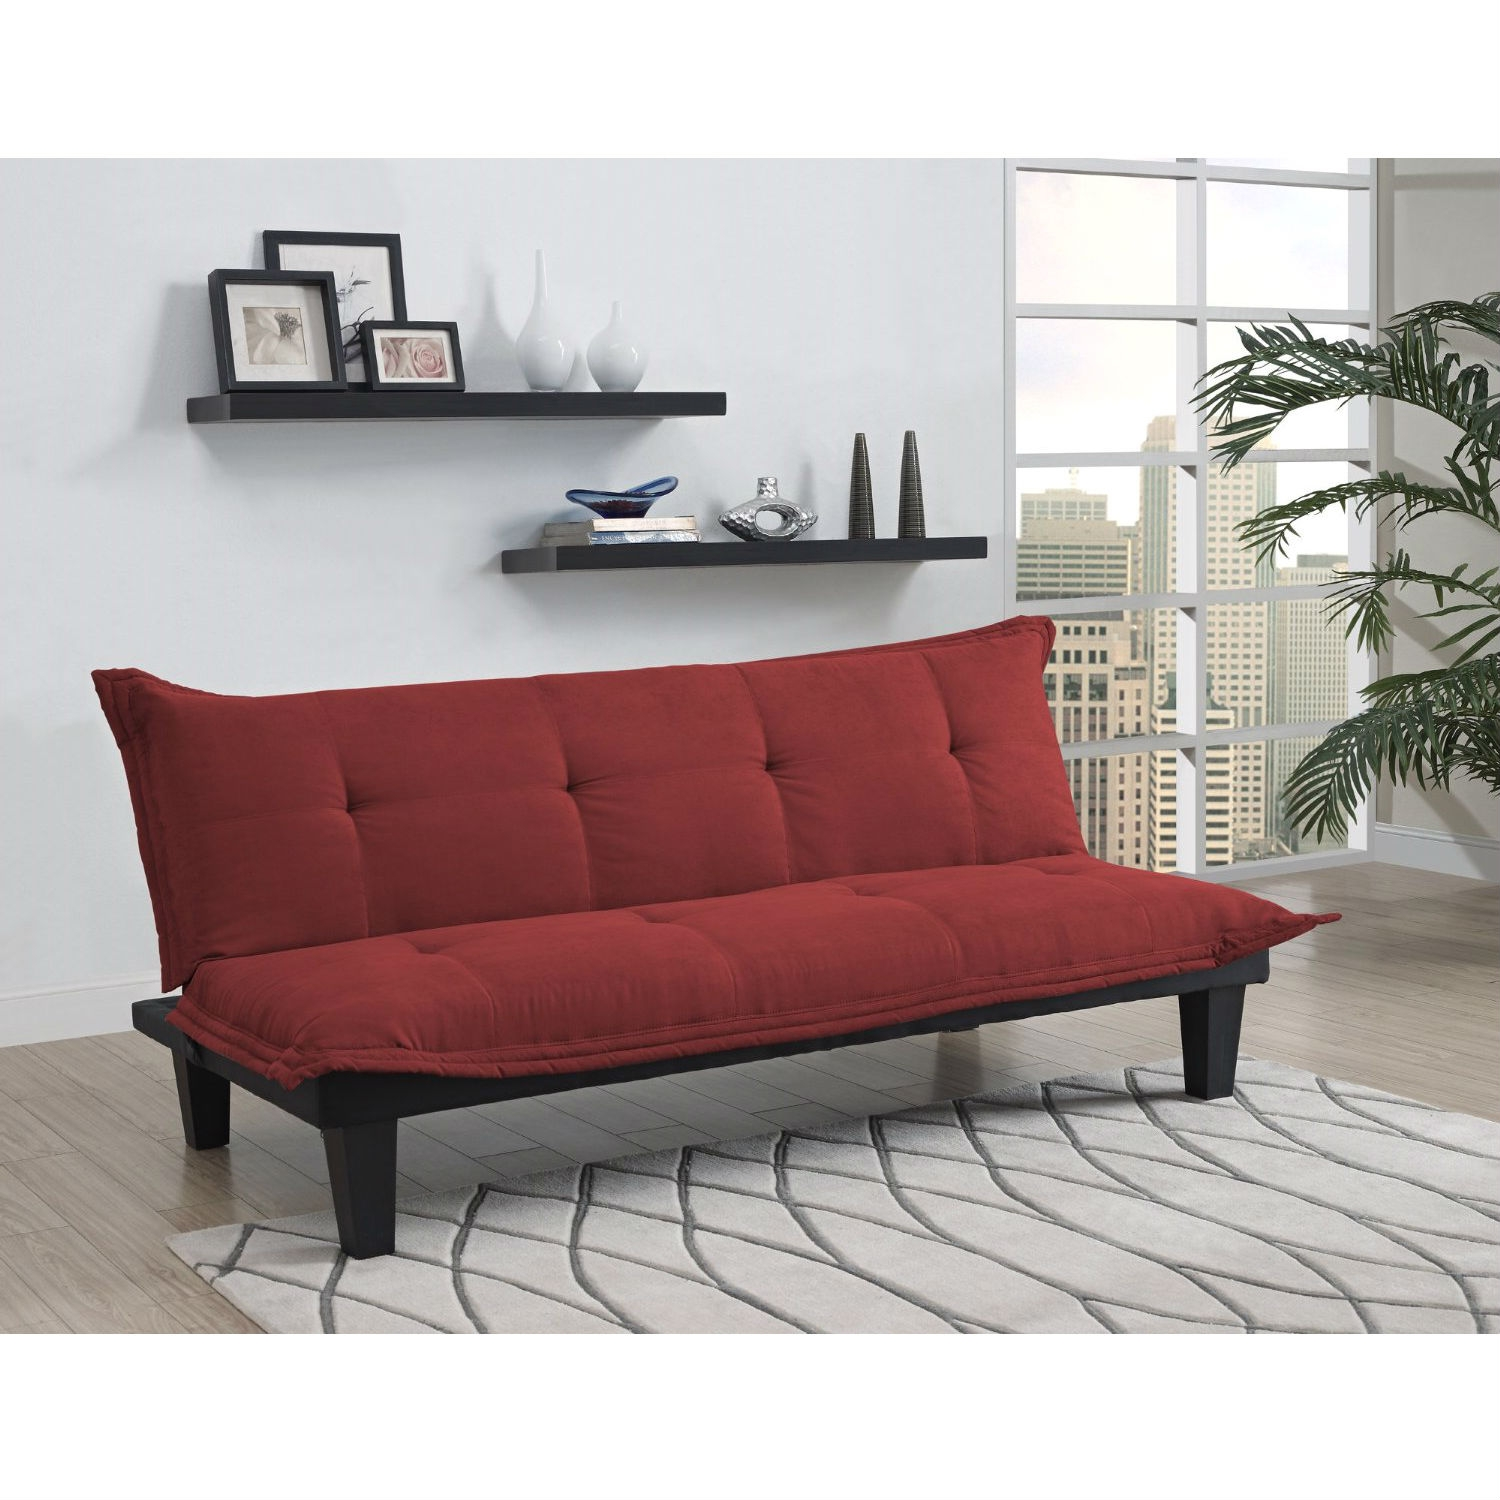 Contemporary Futon Style Sleeper Sofa Bed in Red Microfiber